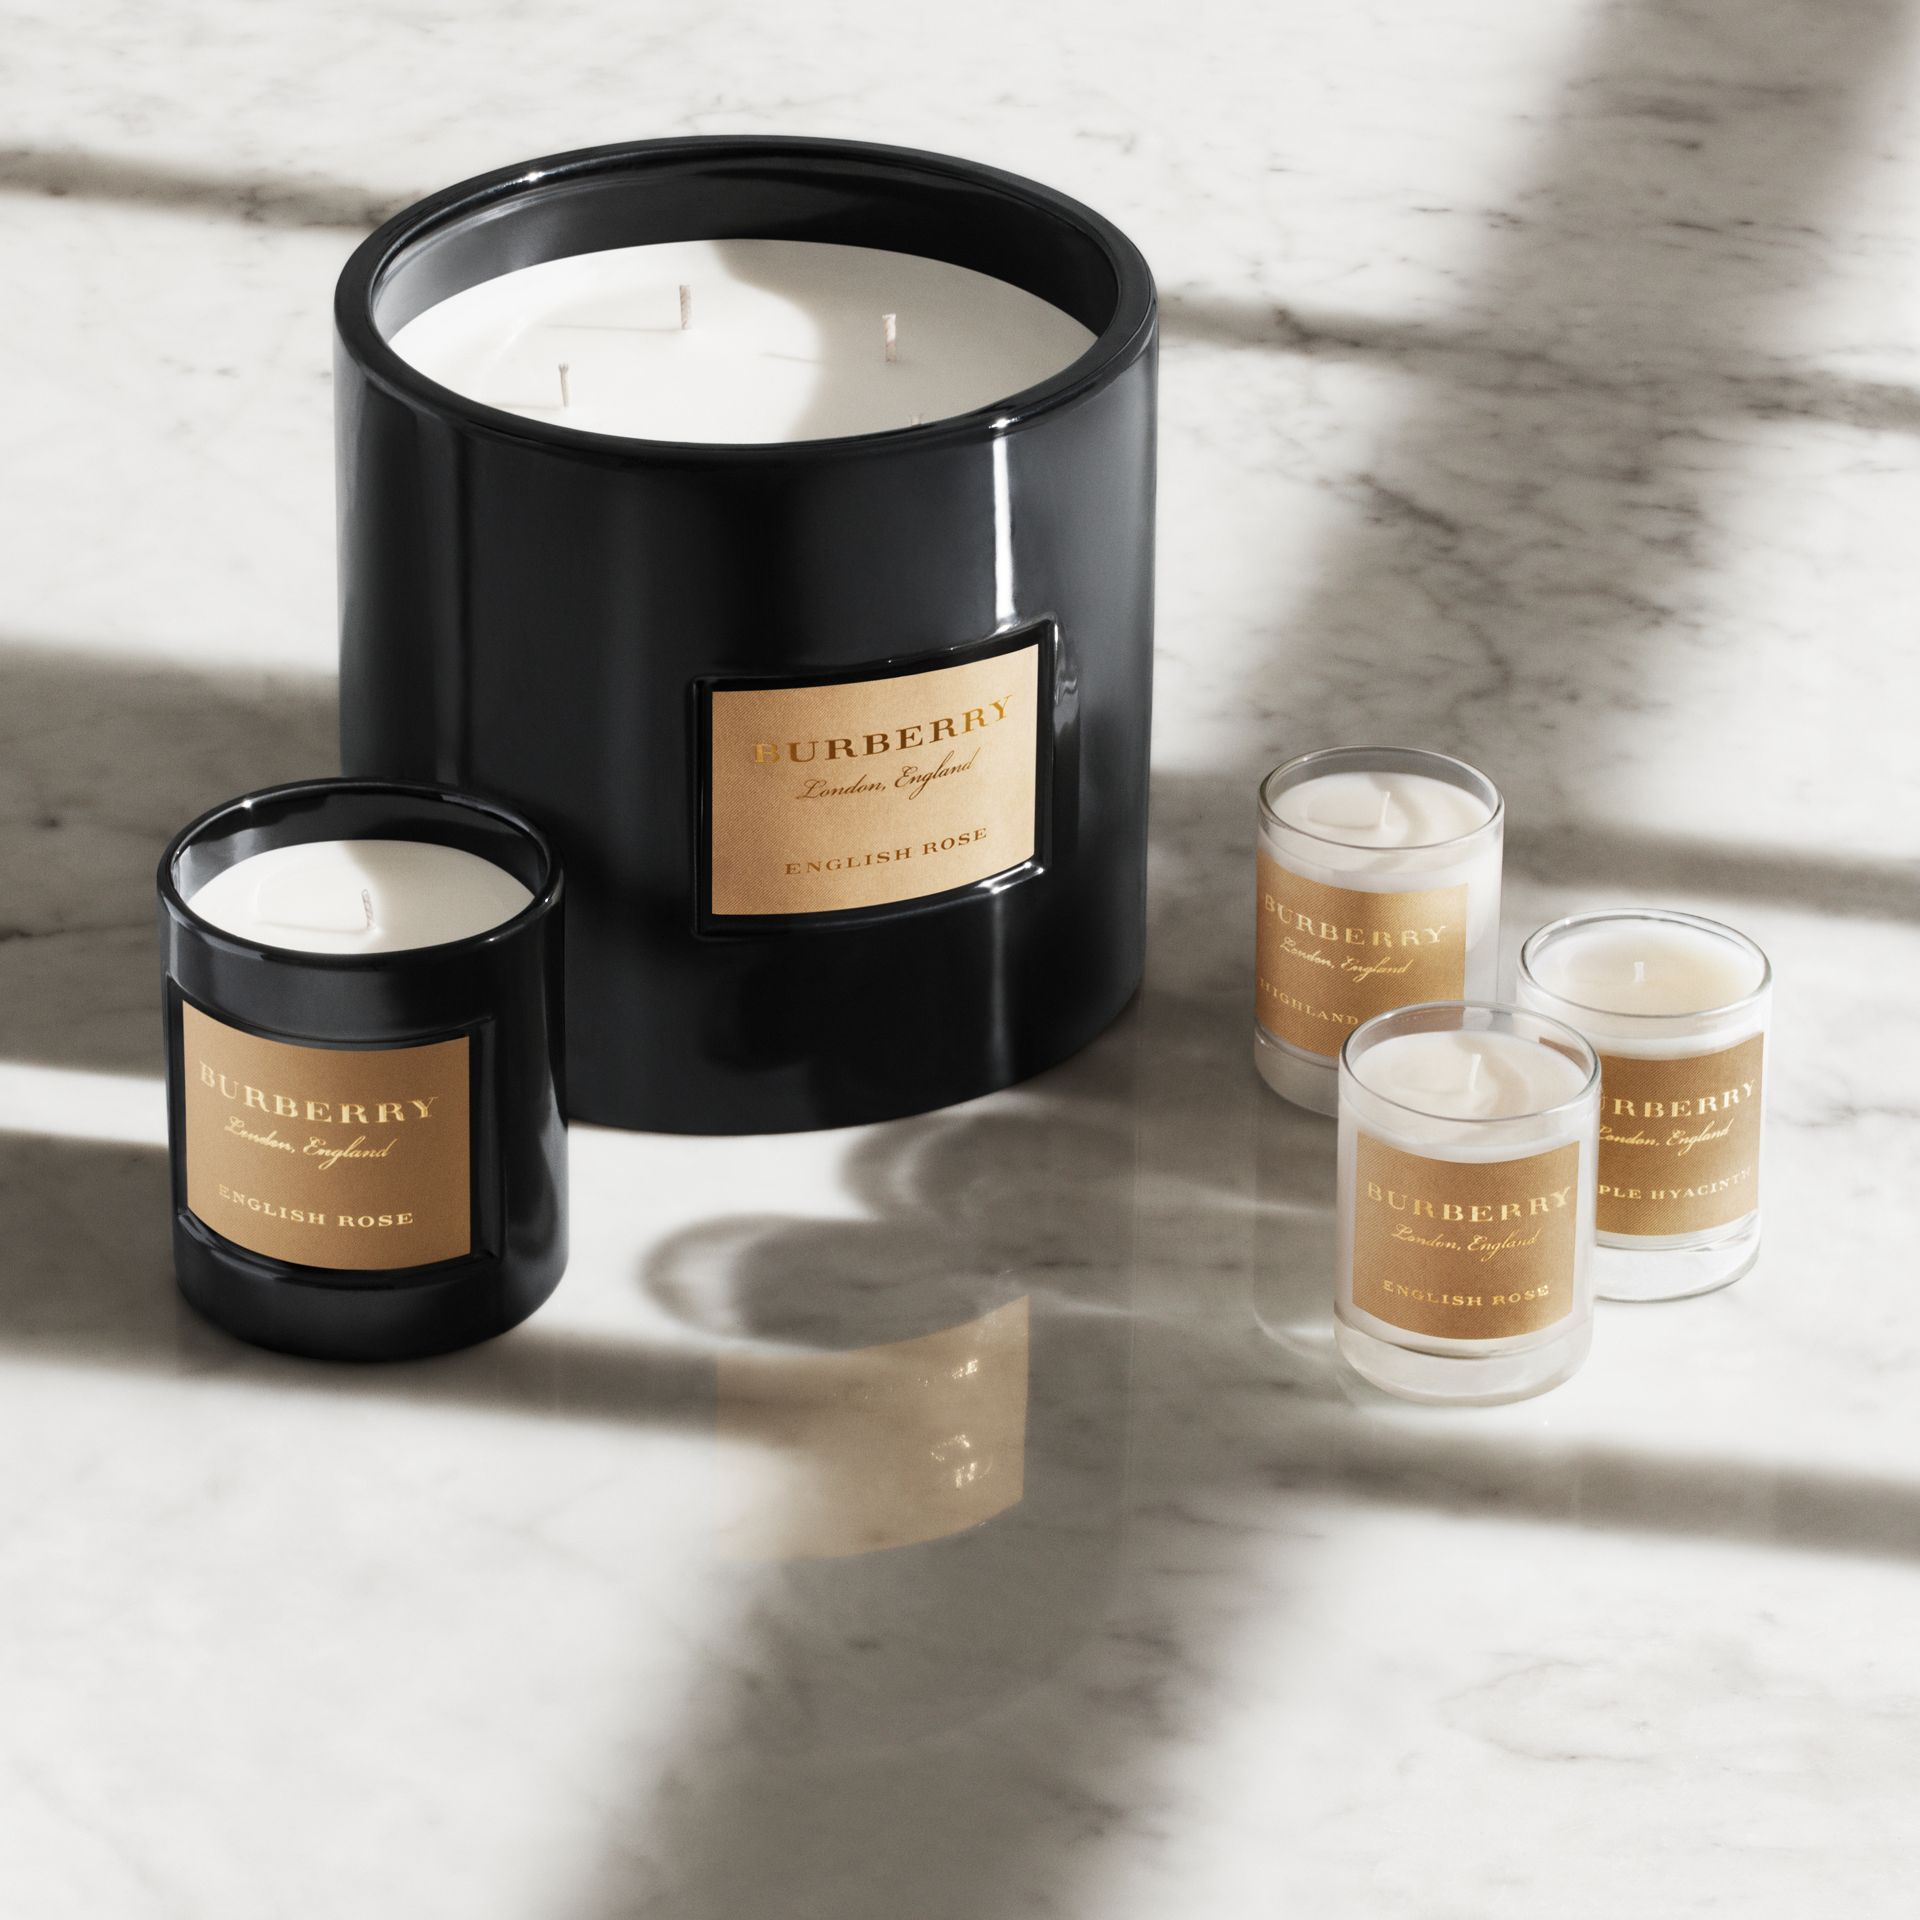 Highland Berry Scented Candle – 240 g | Burberry - Galerie-Bild 1